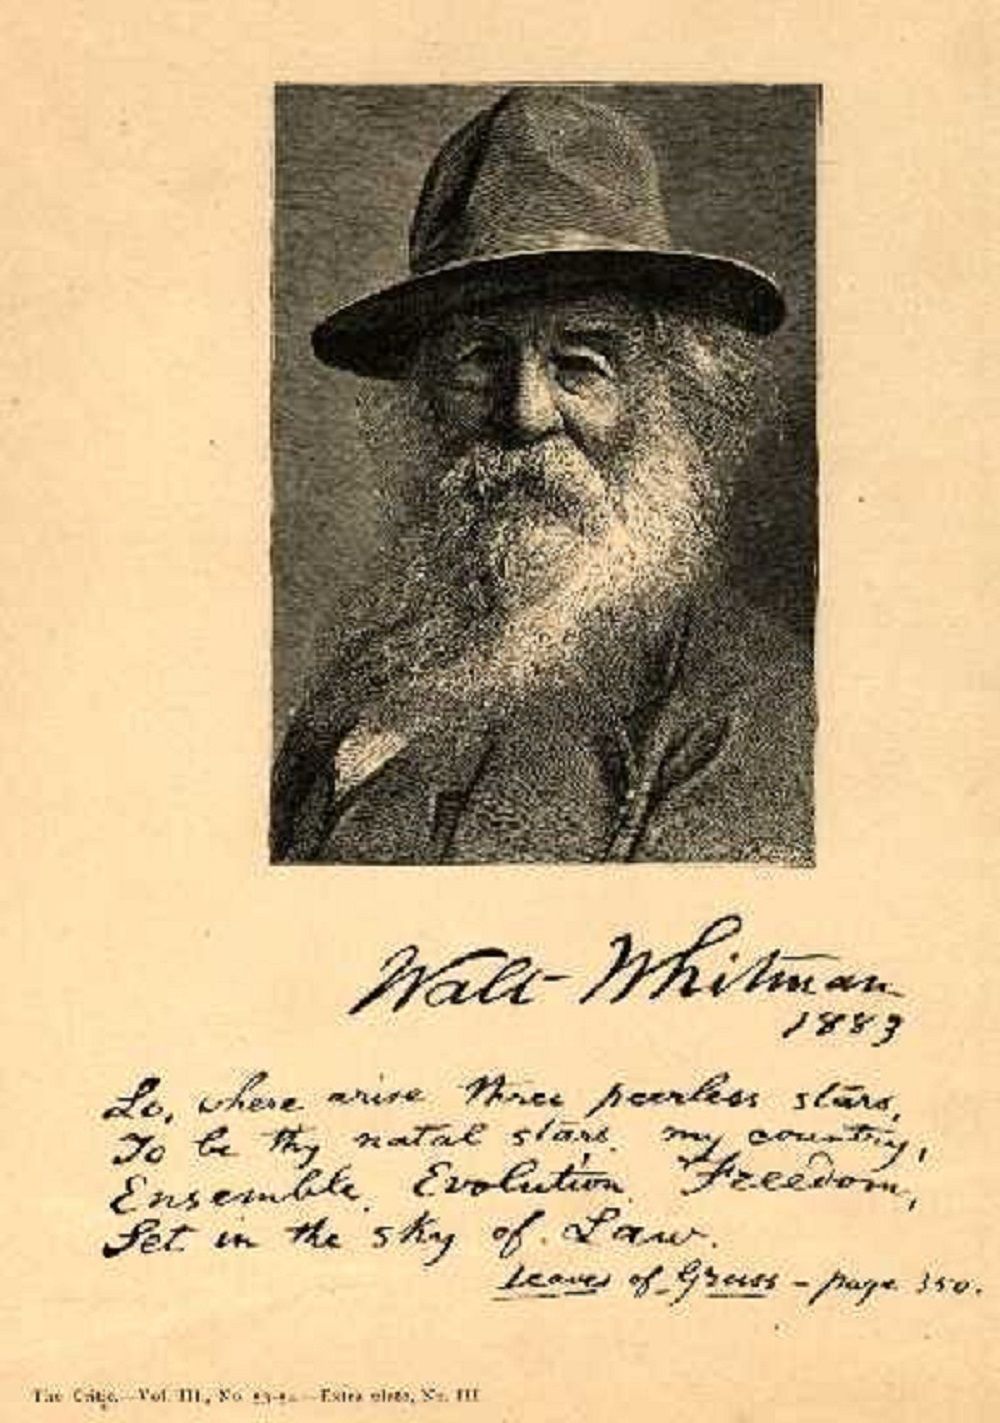 walt whitman mary carroll hackett poetry and prose whitman walt 1819 1892 1883 engraving